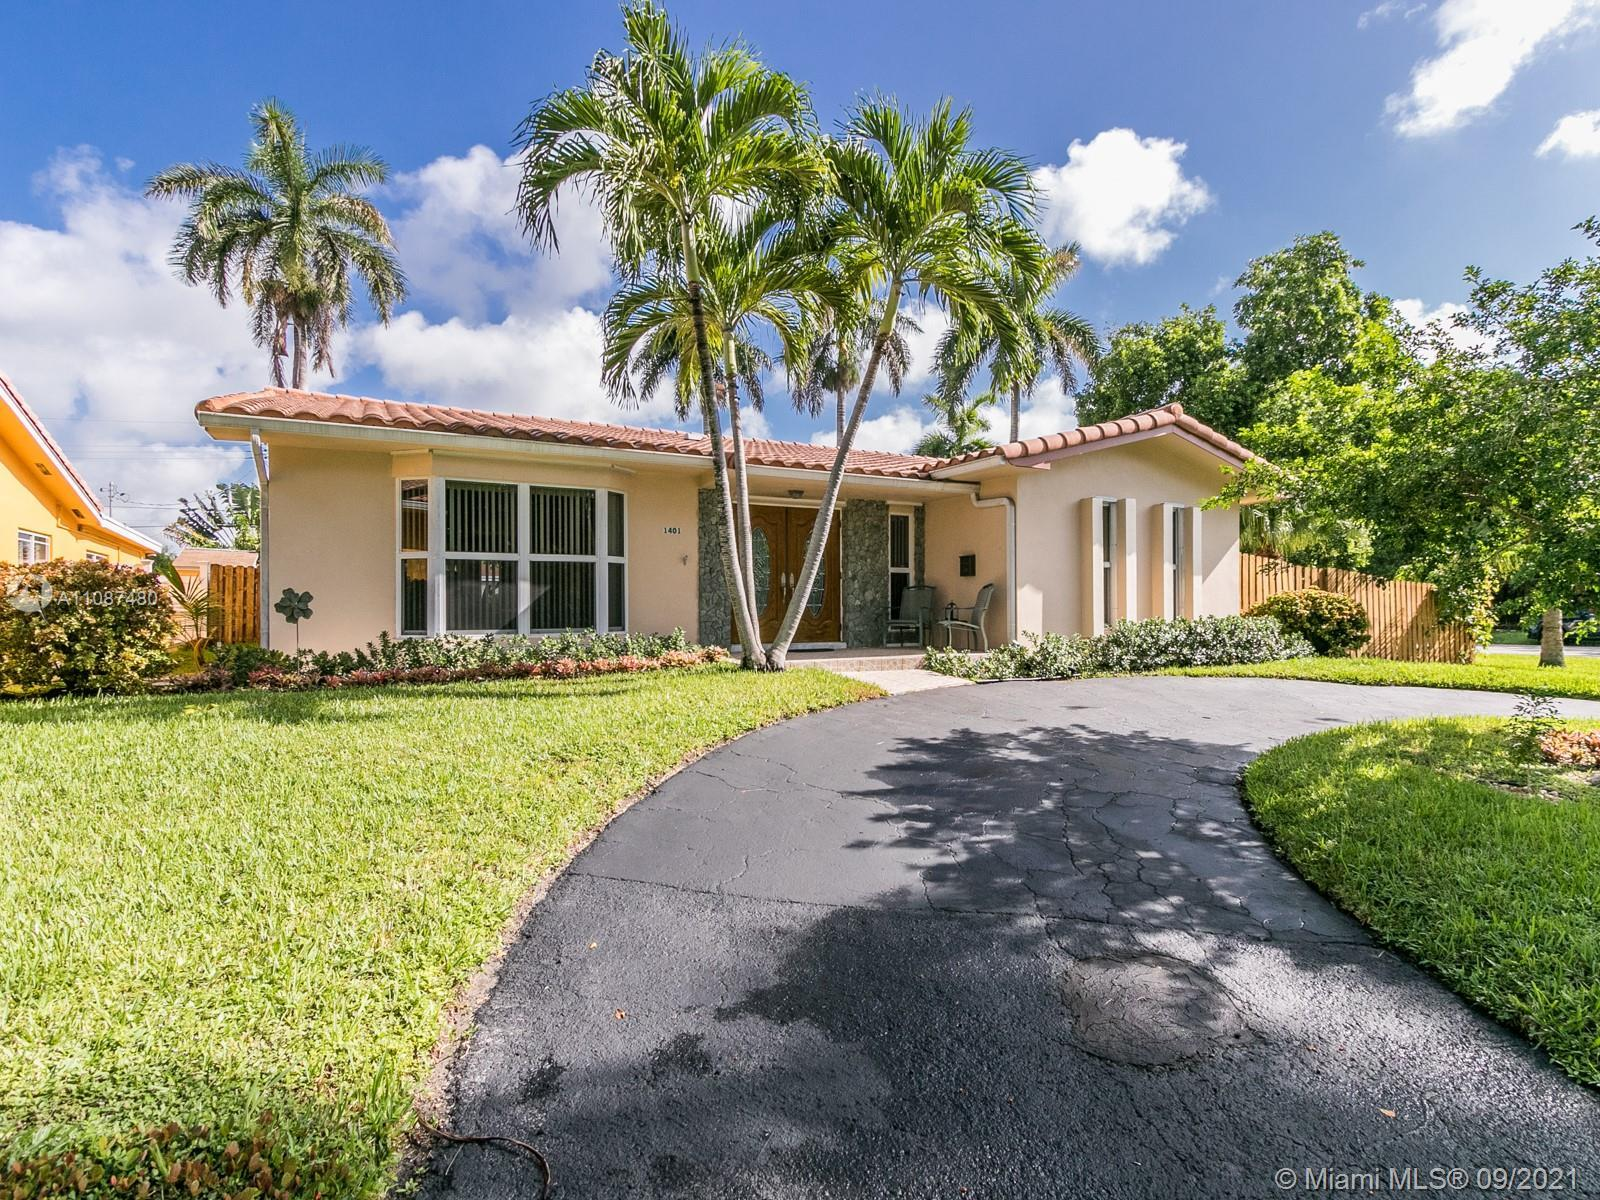 Location is the key to a happy life! 2nd generation family owned, Corner lot, Circular driveway. Min